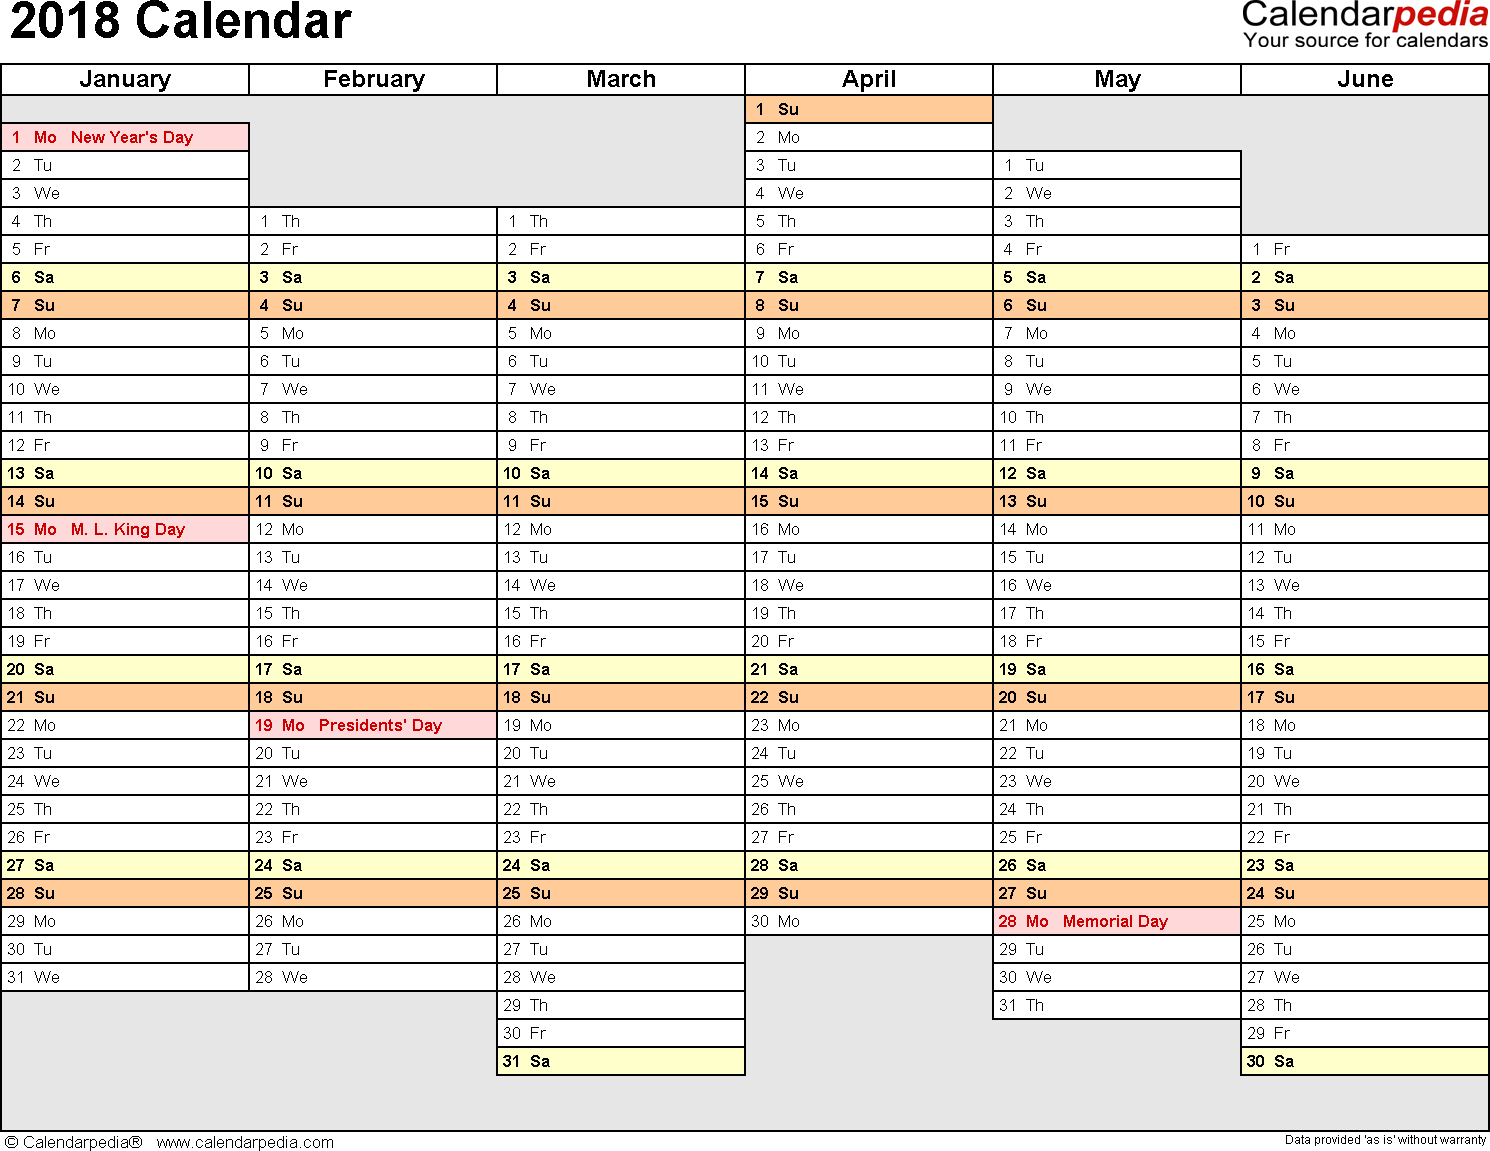 template 6 2018 calendar for excel months horizontally 2 pages days of